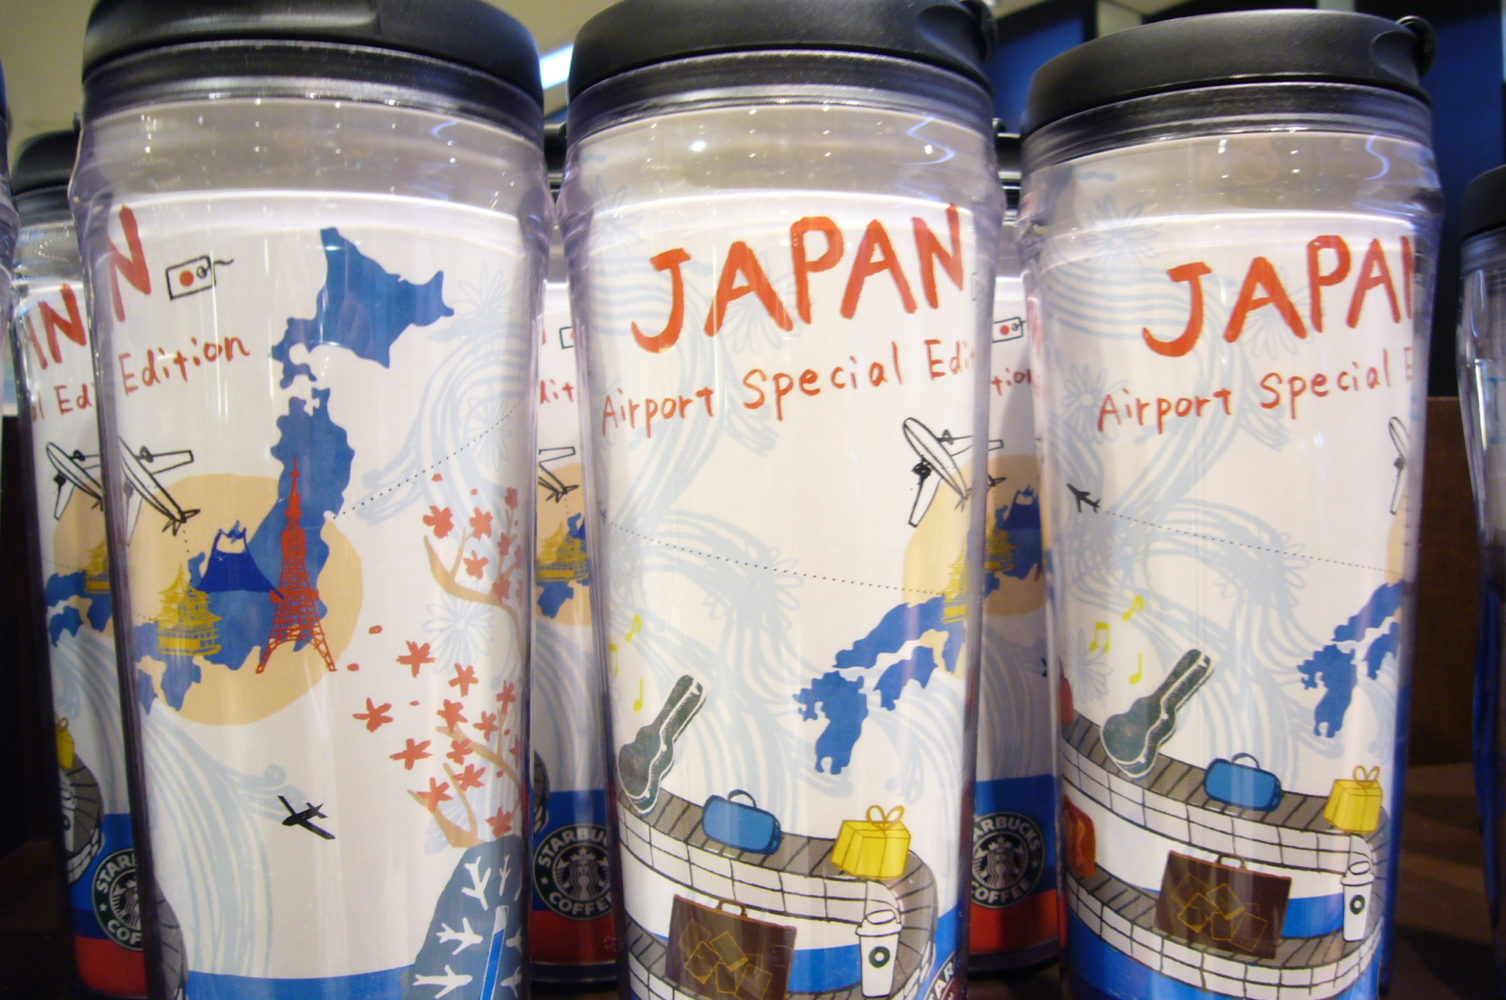 Special Japanese Edition Starbucks Travel mugs